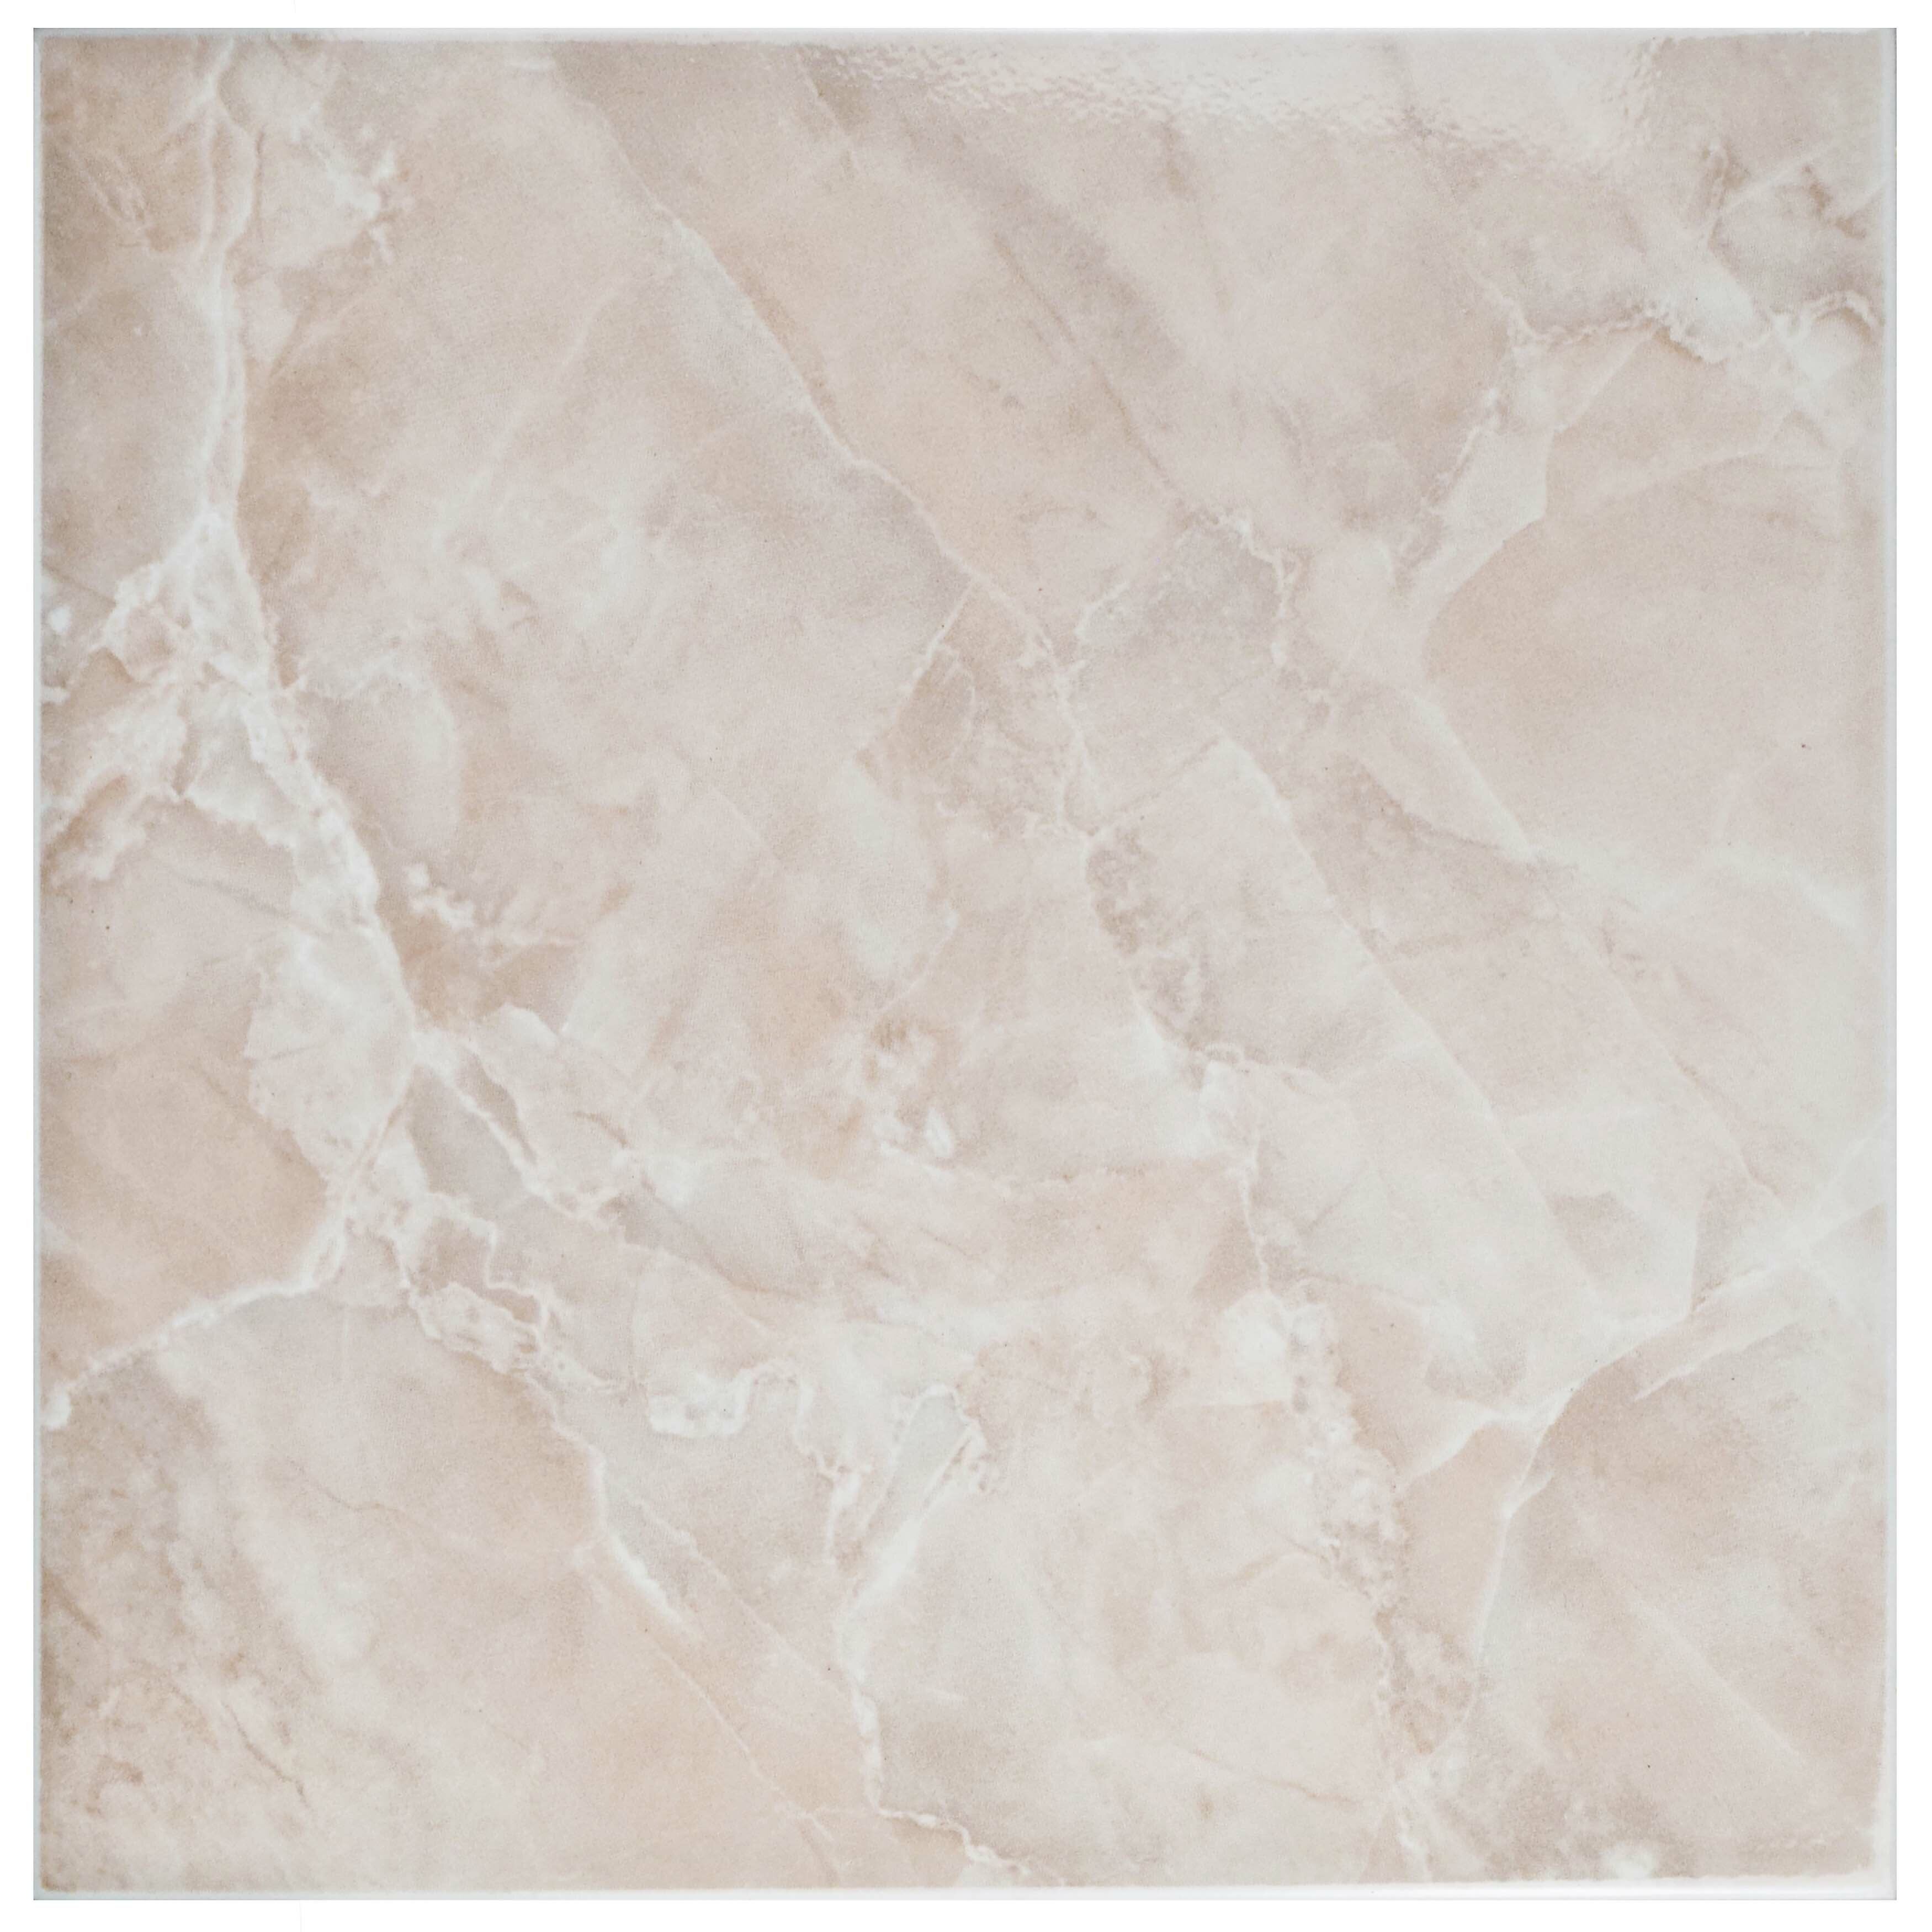 Elitetile alpha 1175 x 1175 ceramic field tile in pinkwhite elitetile alpha 1175 x 1175 ceramic field tile in pinkwhite reviews wayfair dailygadgetfo Image collections